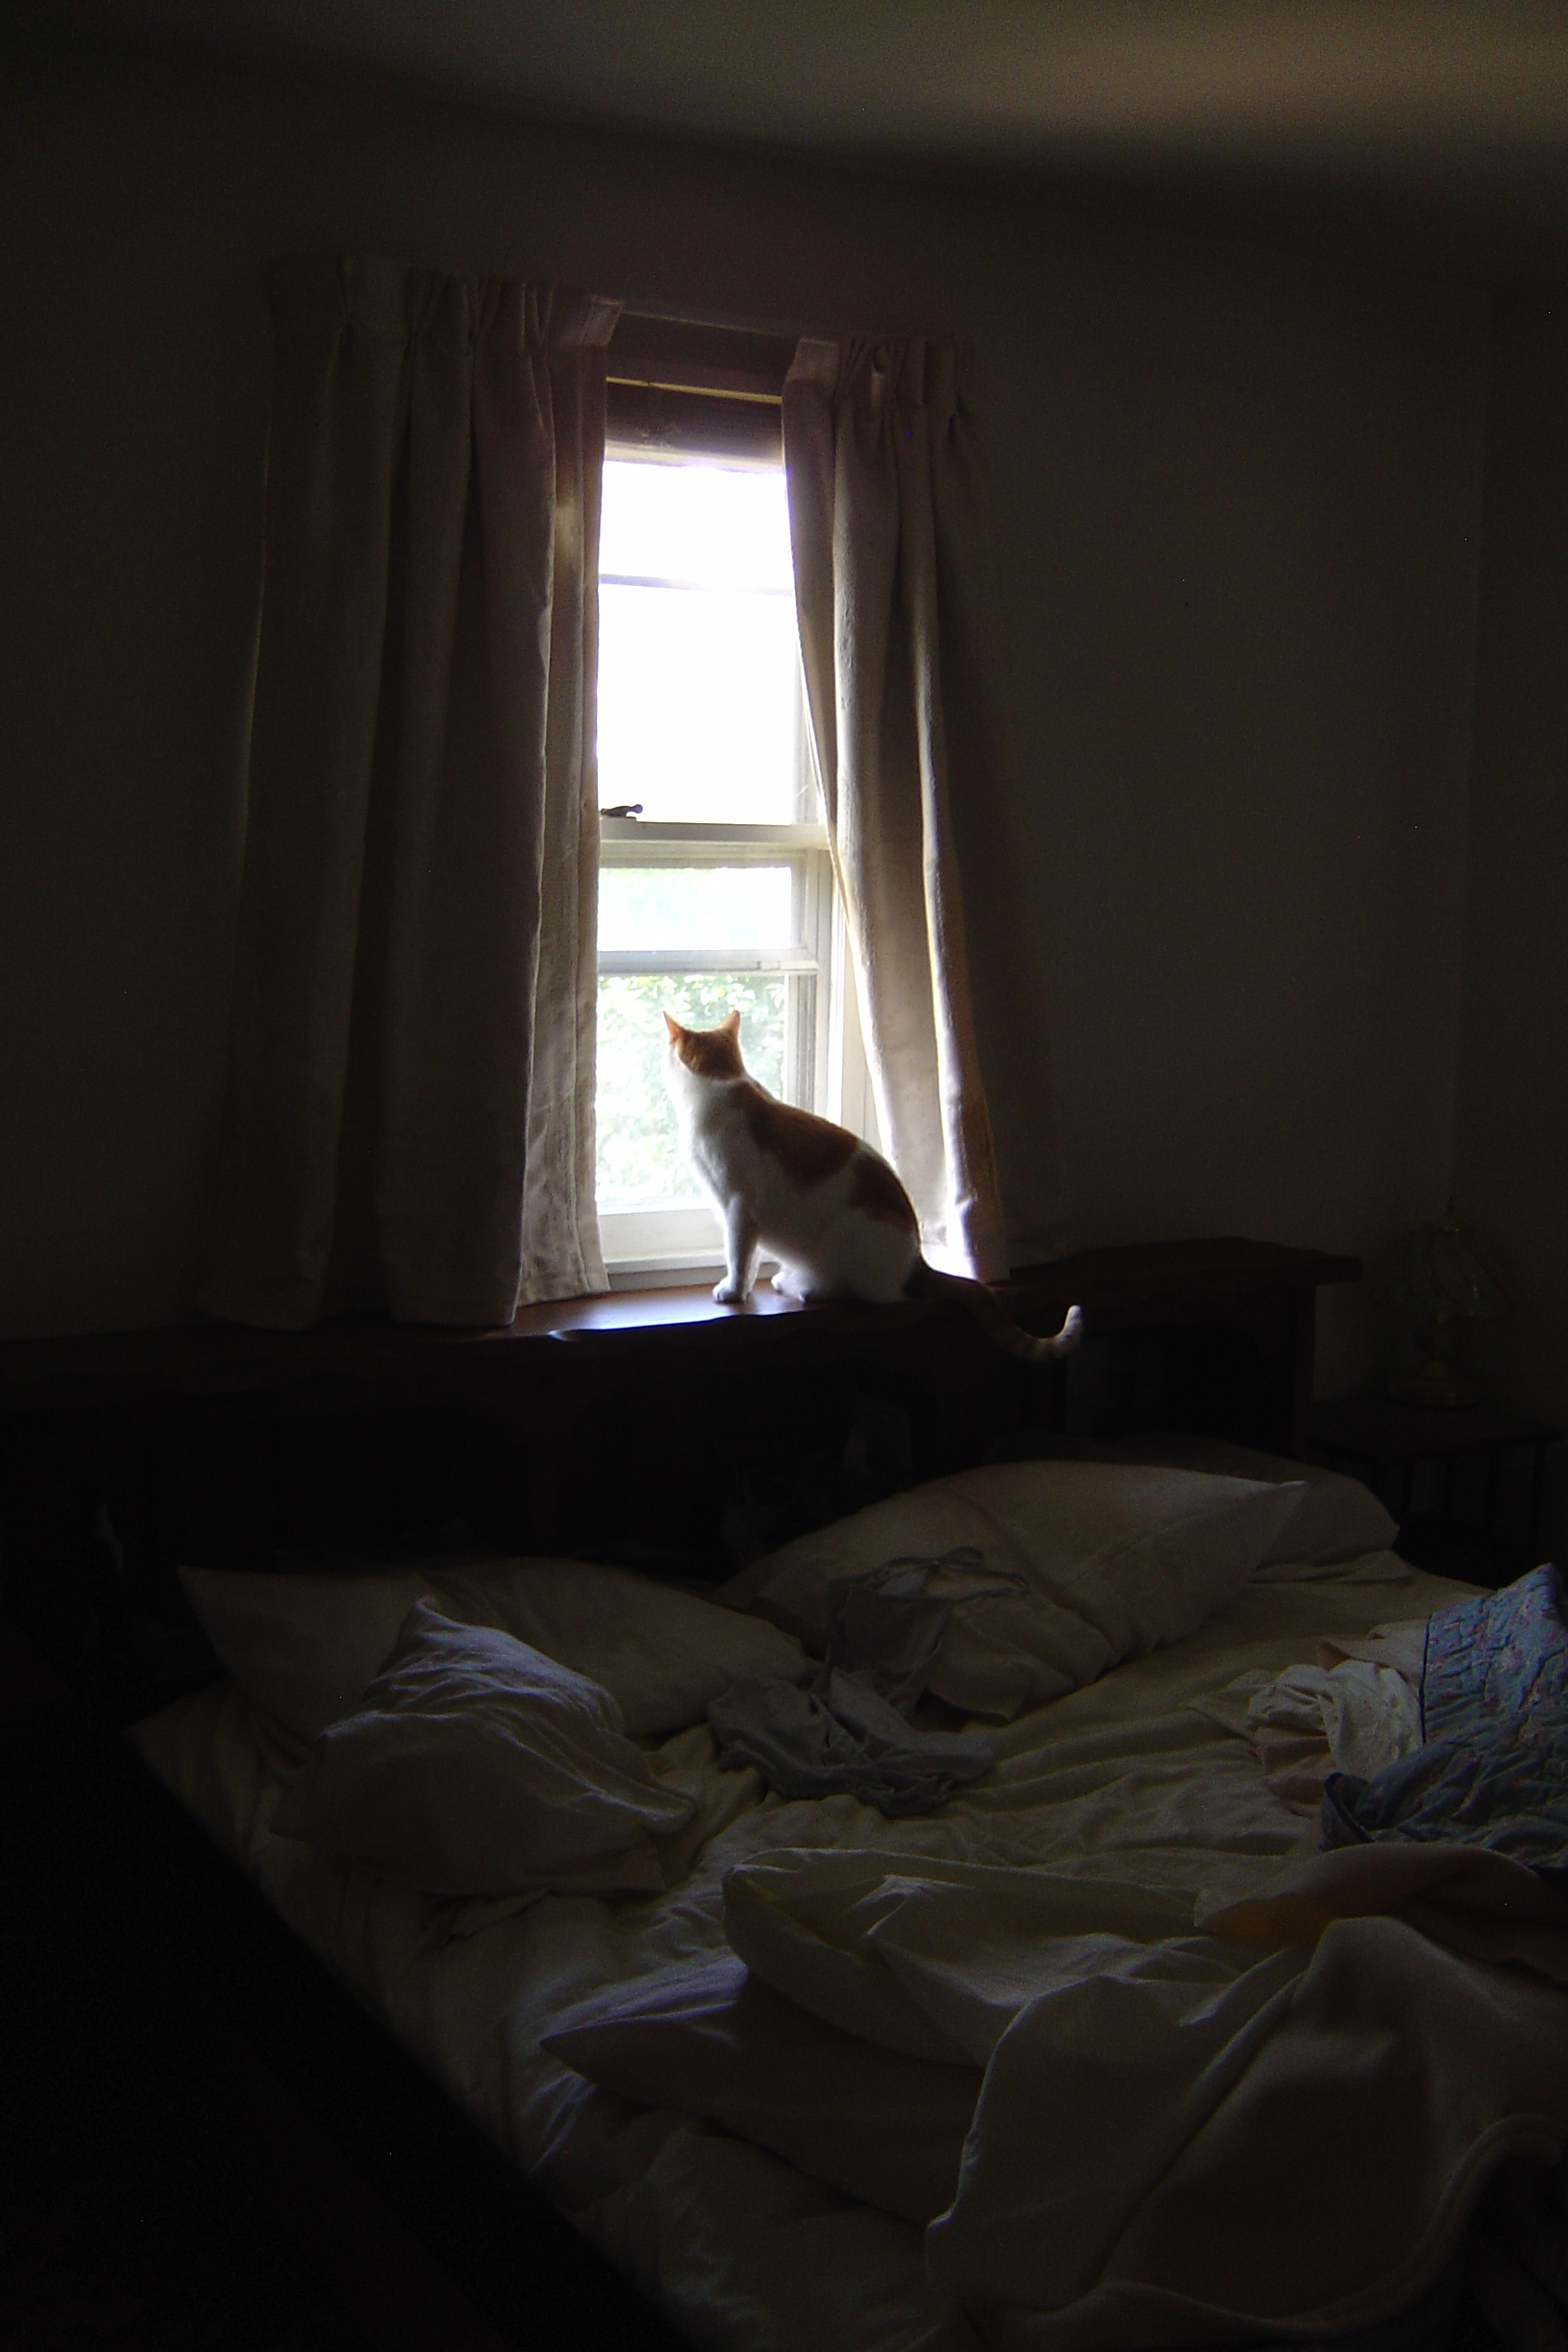 cat in bedroom window picture free photograph photos public domain. Black Bedroom Furniture Sets. Home Design Ideas